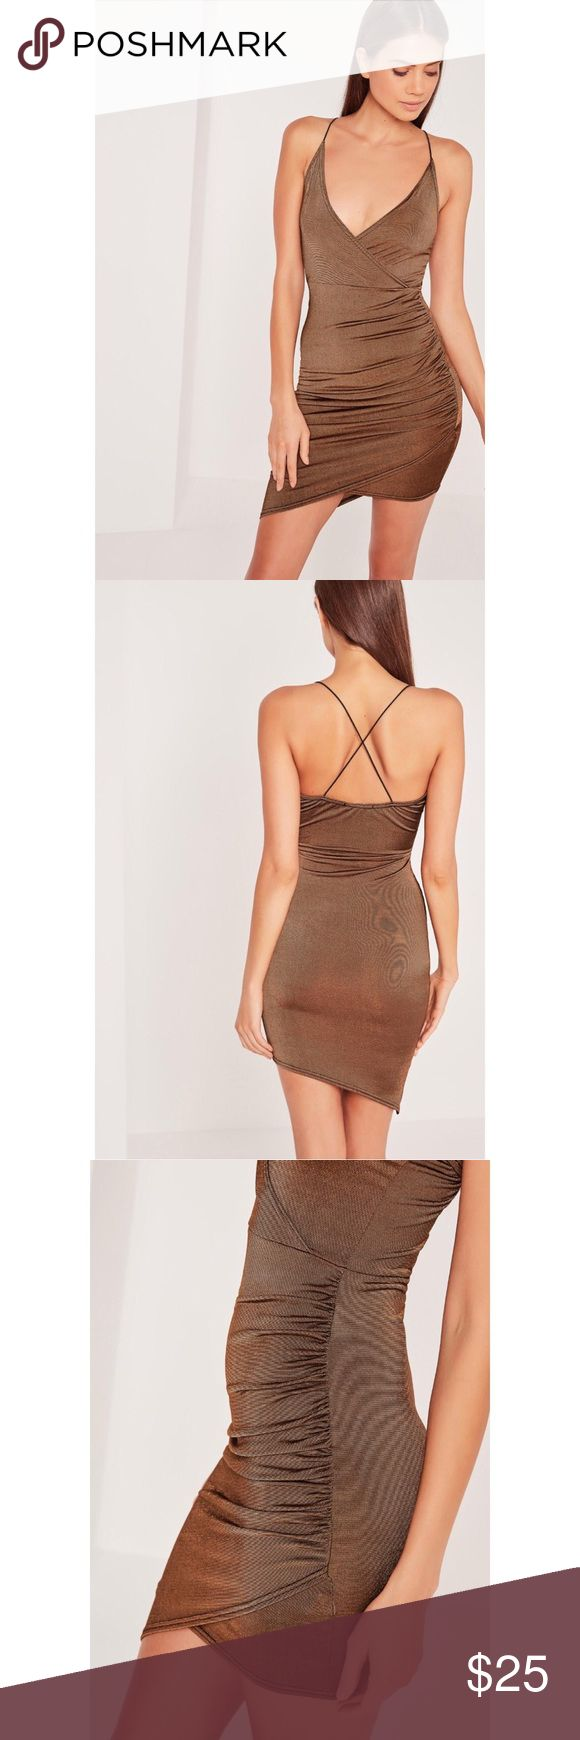 """petite strappy wrap bodycon brown dress This is a petite strappy wrap bodycon brown dress from Missguided. It is a size 4 US or a size 8 UK. It is a petite size so it looks great on girls that are 5'3"""" and under.  This is brand new with tags and I've only worn it to try it on. Unfortunately it doesn't look flattering on me because I don't really have the chest for it but everything else looked great. I'm actually 5'0"""" and 101 pounds and it fitted nicely. Missguided Dresses Asymmetrical"""